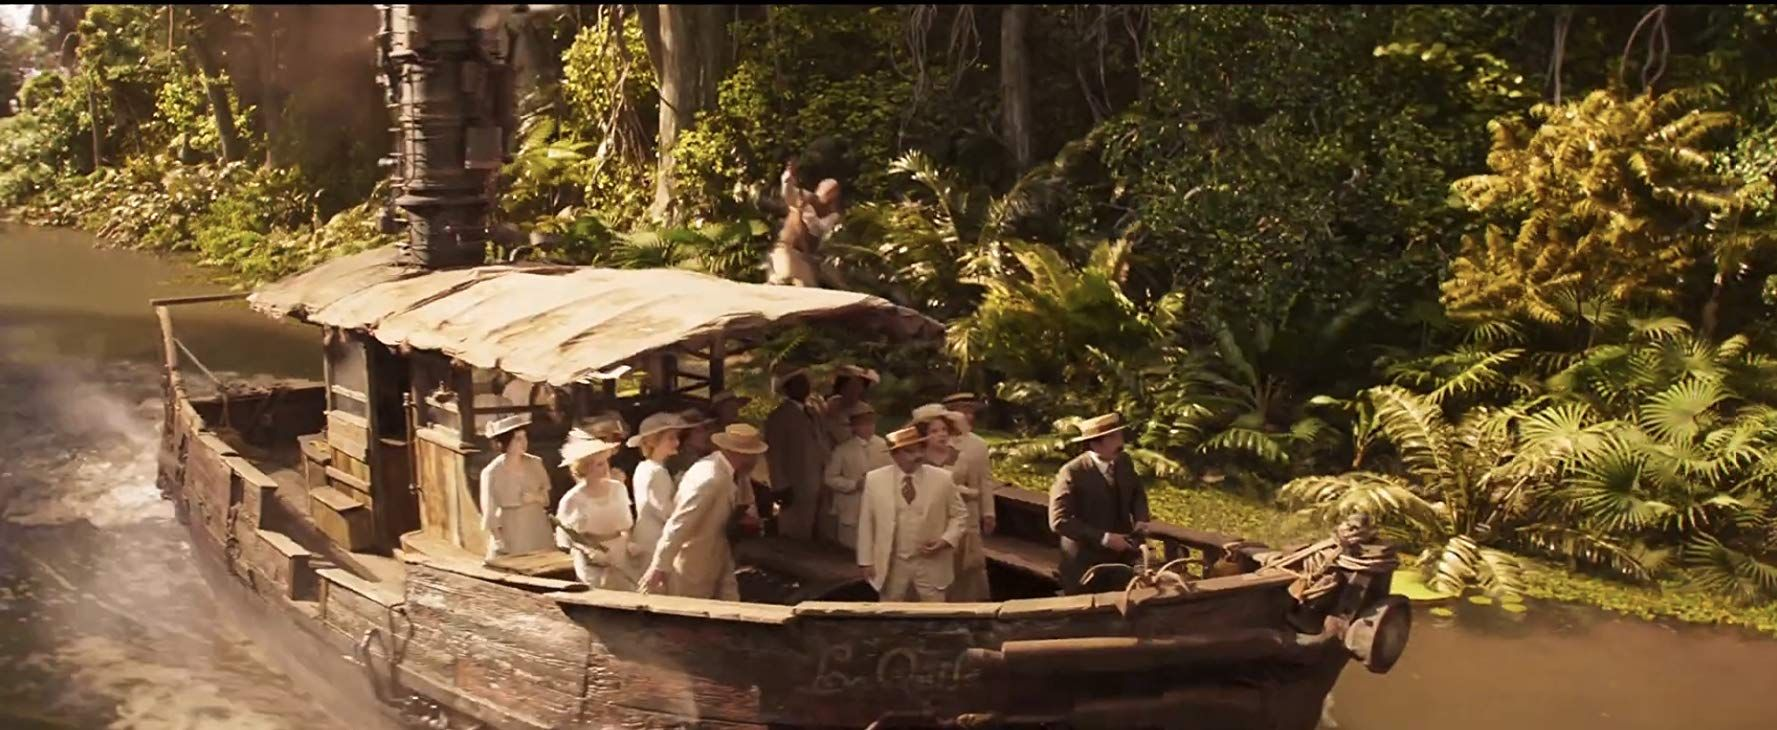 123Movies Jungle Cruise Free Movies   Jungle cruise, Theme parks rides,  Cruise